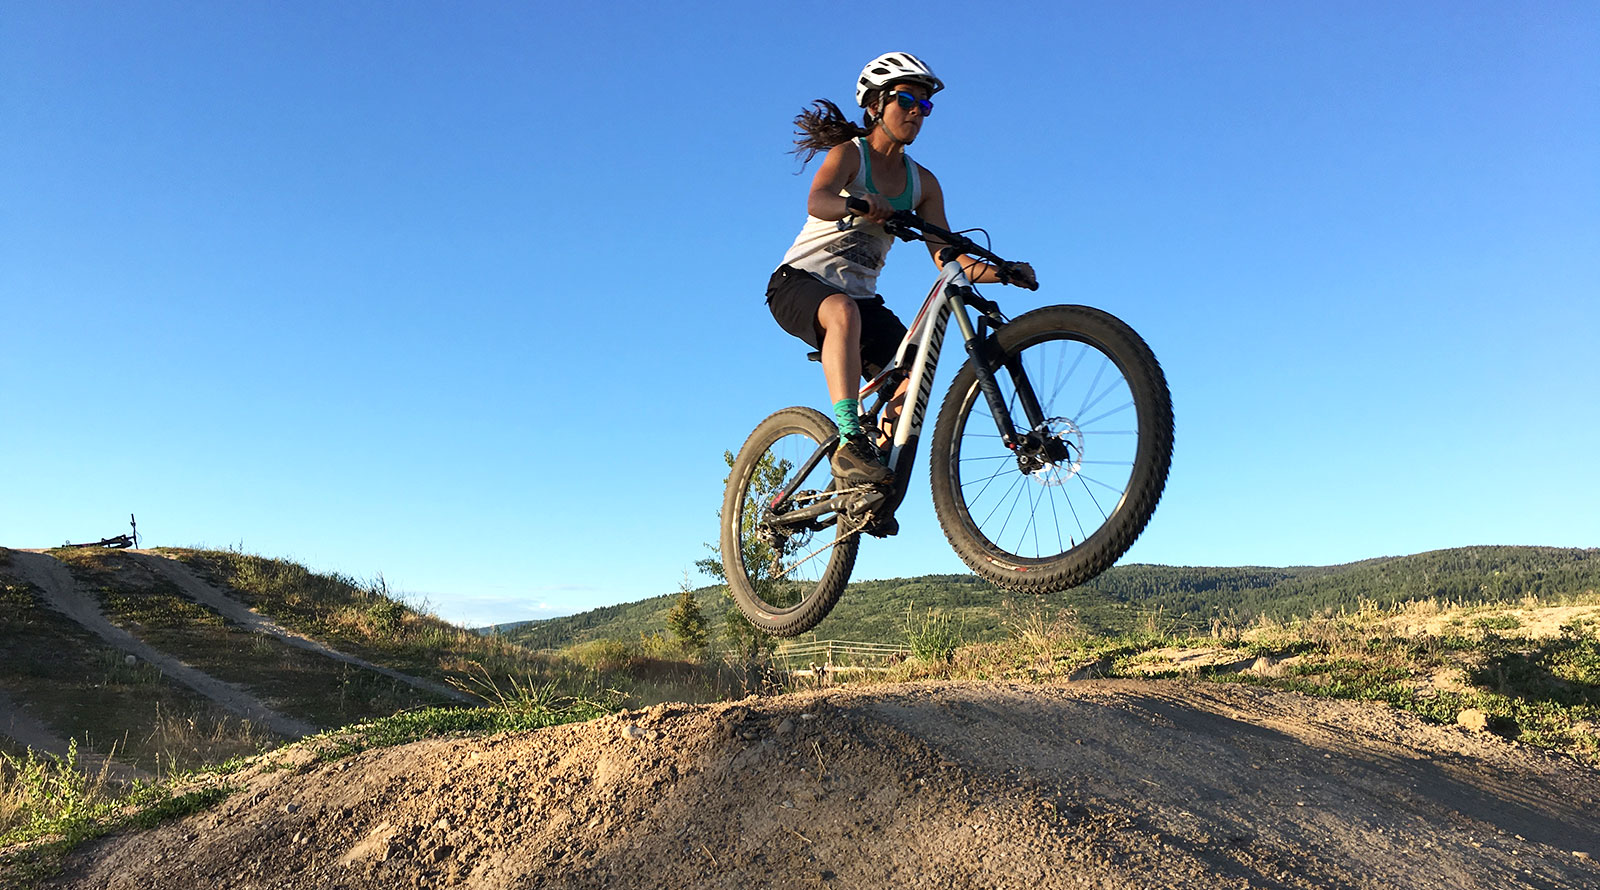 jess jumping specialized stump jumper women mountain bikers mountain biking